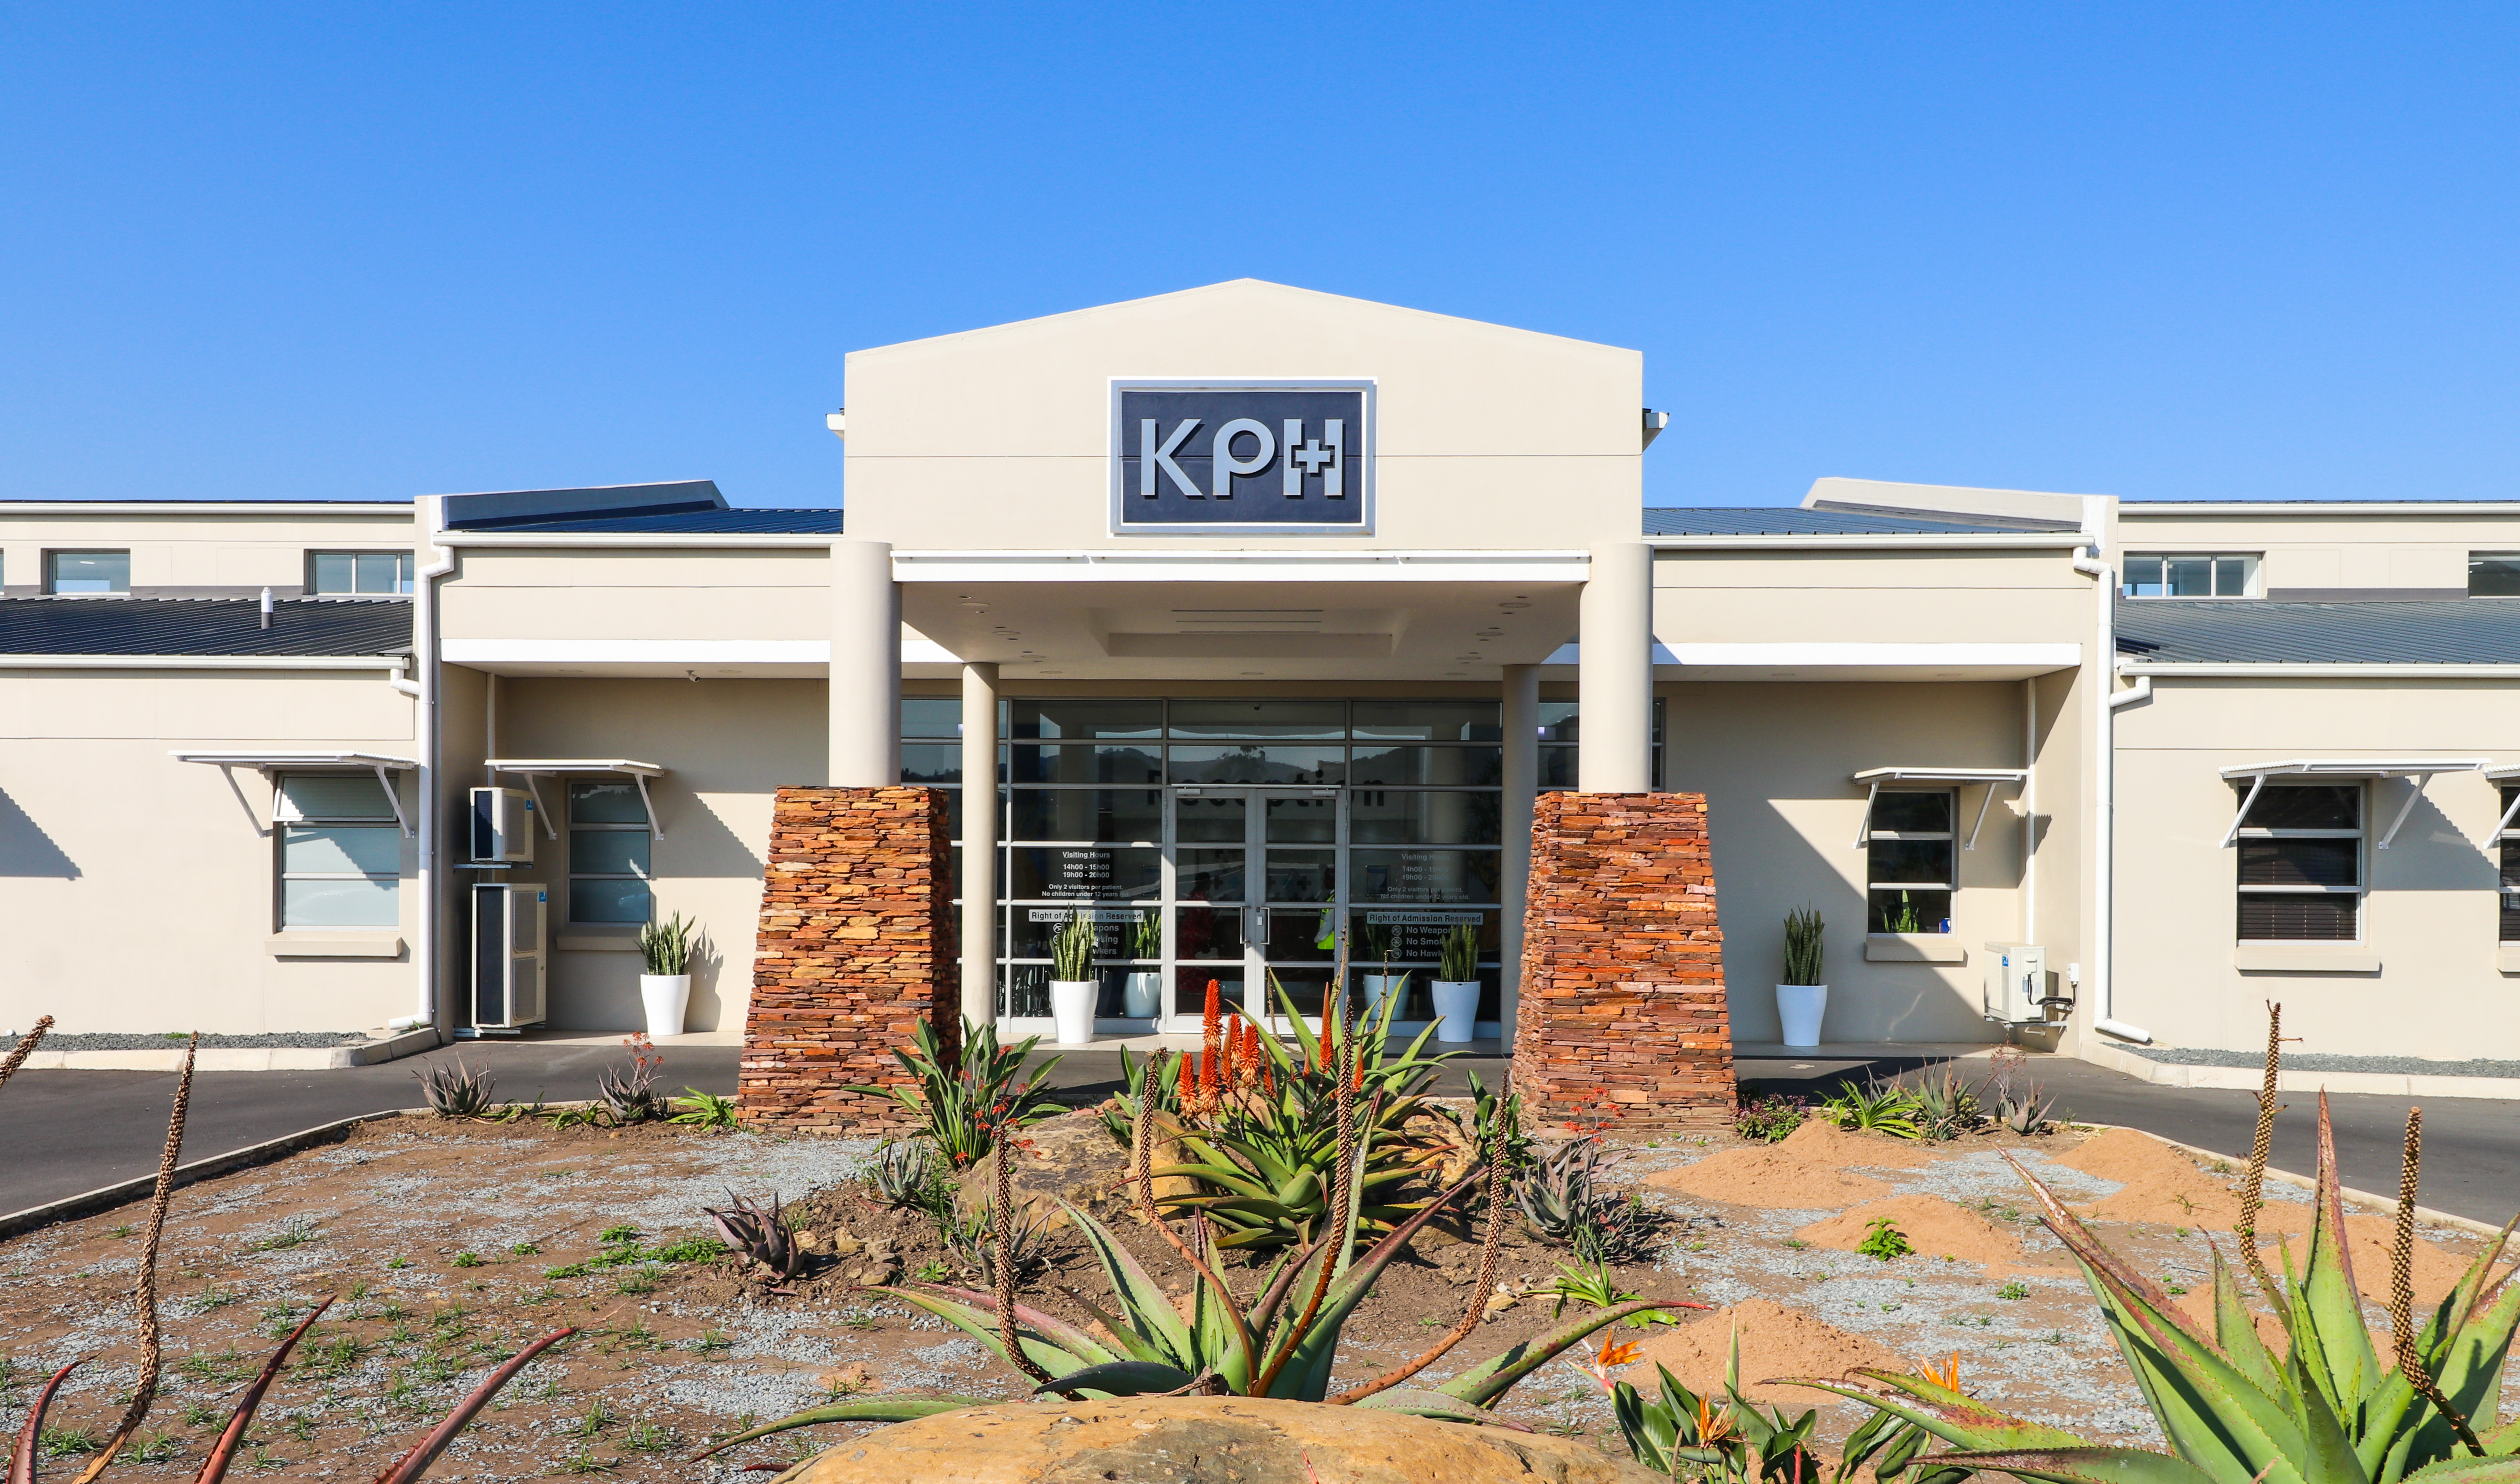 KwaDukuza Private Hospital – Healthcare